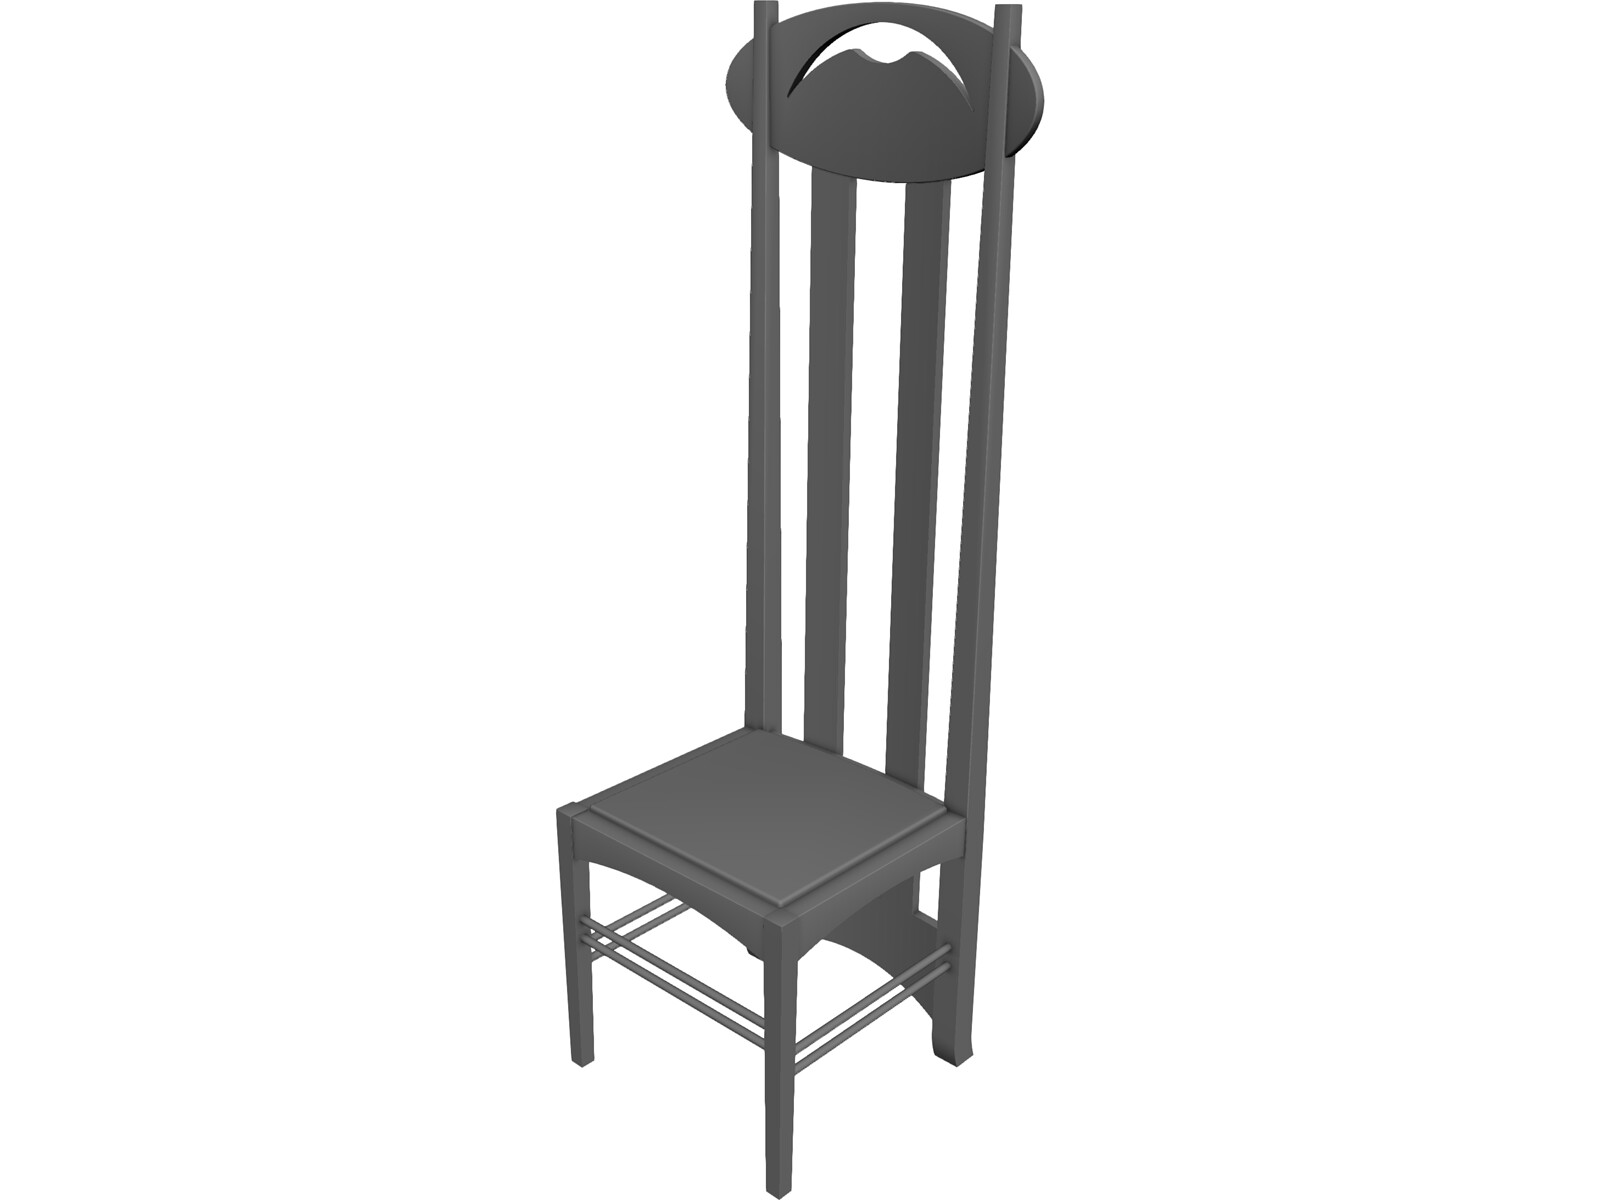 Chair Argyle Charles Rennie Mackintosh